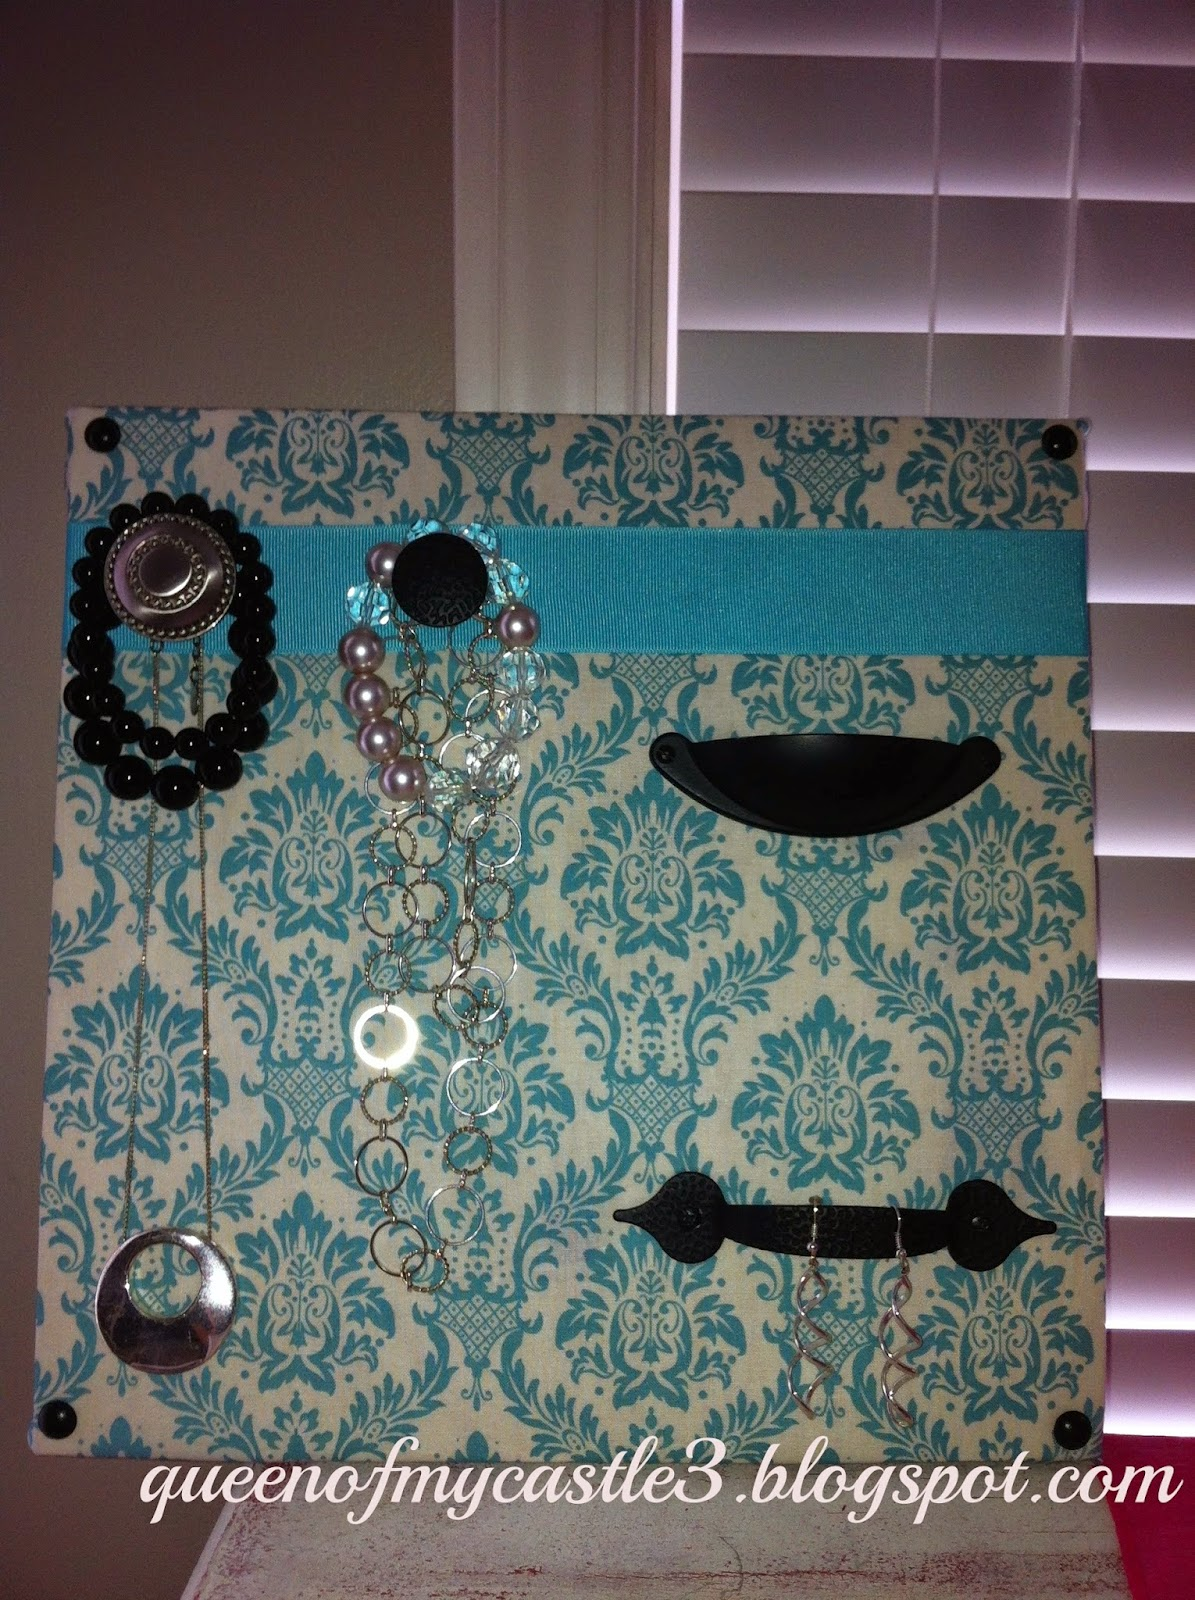 Crafty jewelry board